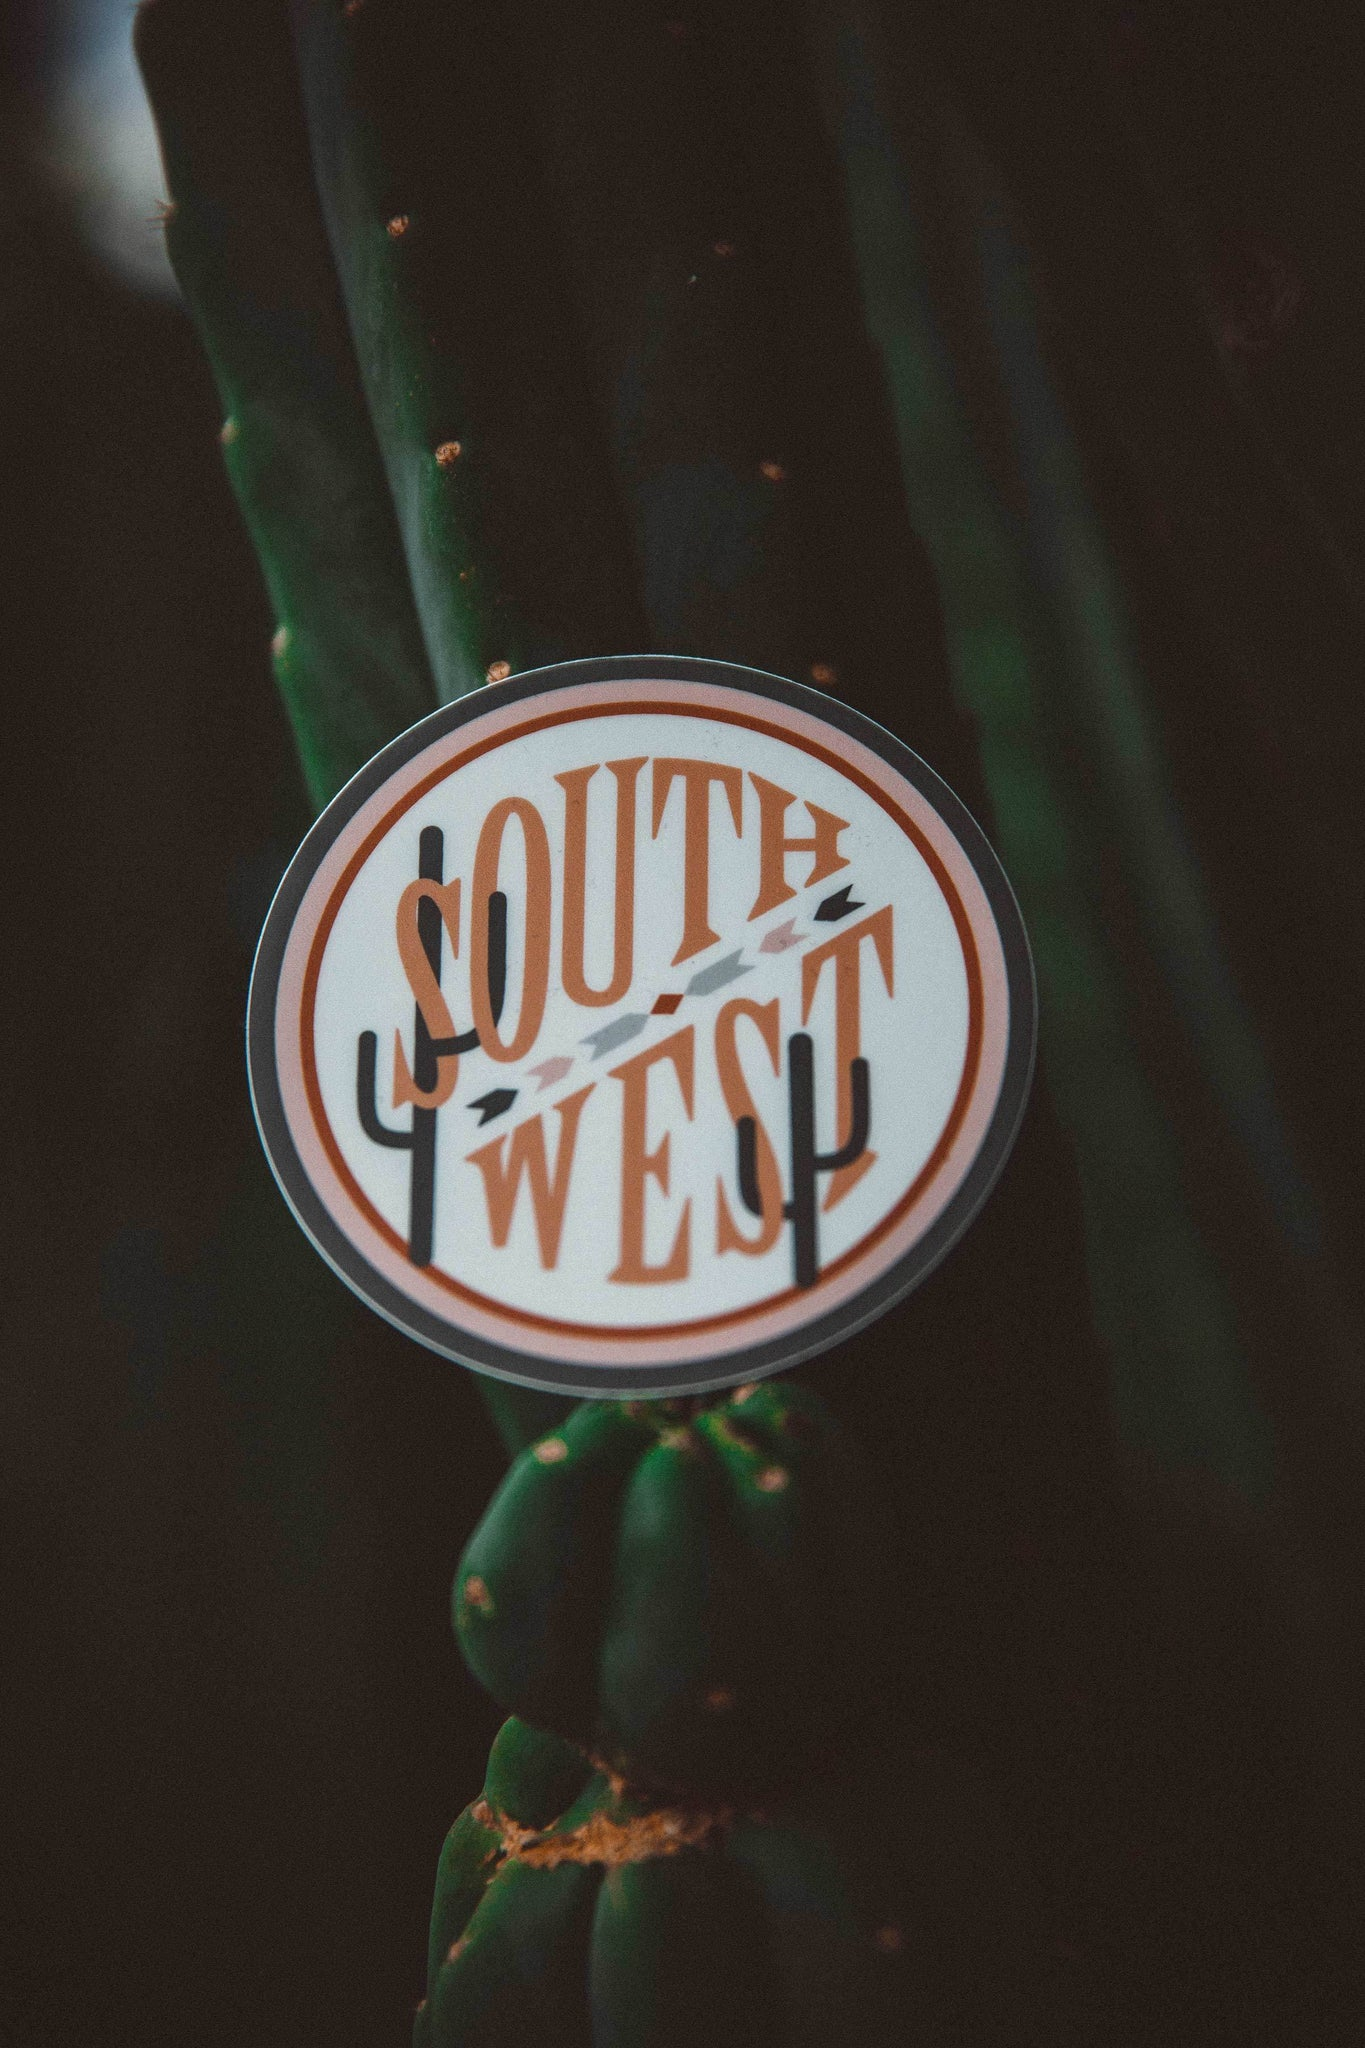 The Parks Regions: Southwest Sticker - The Parks Apparel